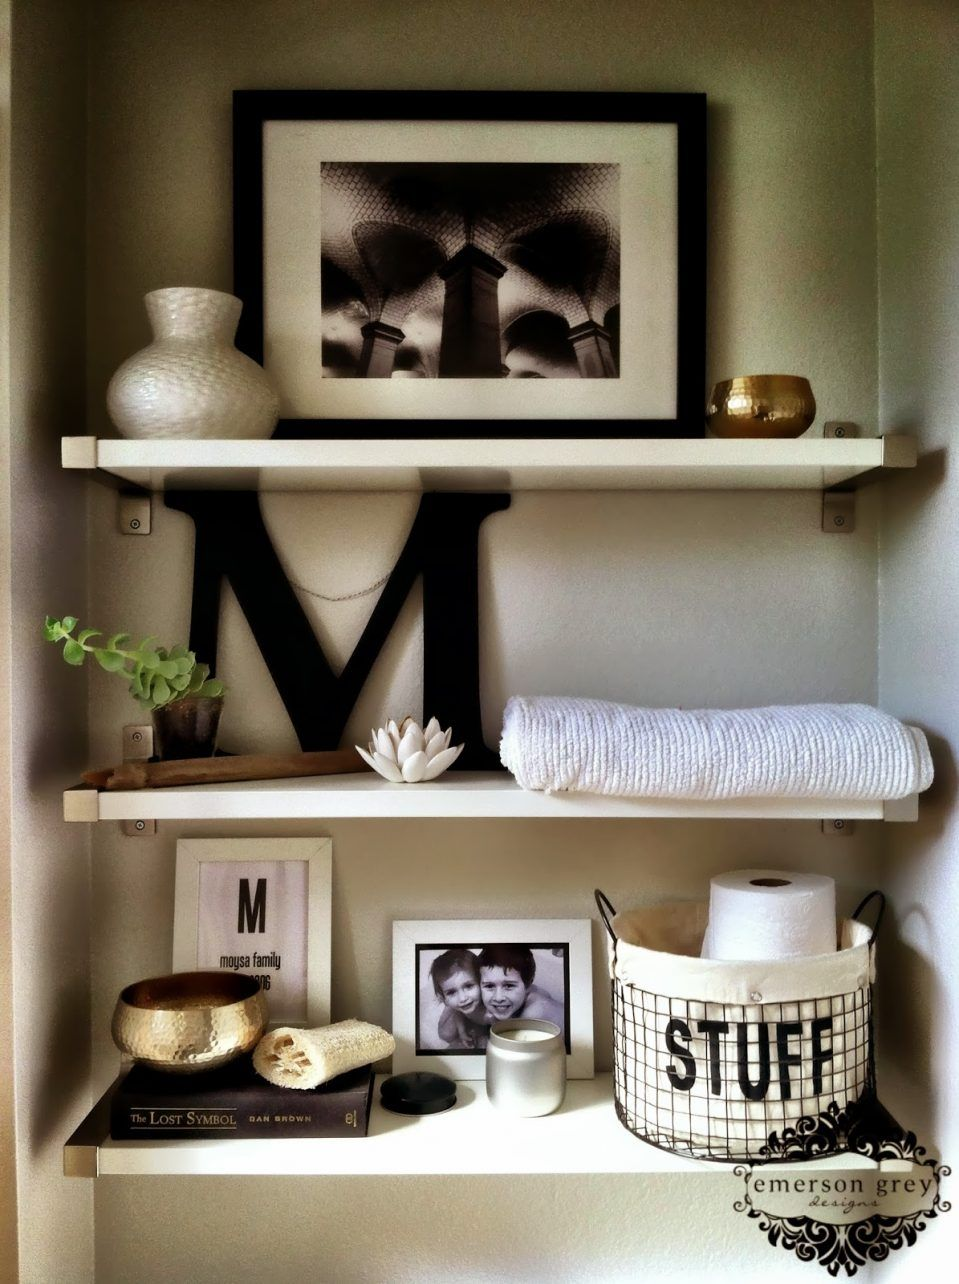 Bathroom interior design in bangladesh image result for bathroom shelves decorating ideas  home decorating